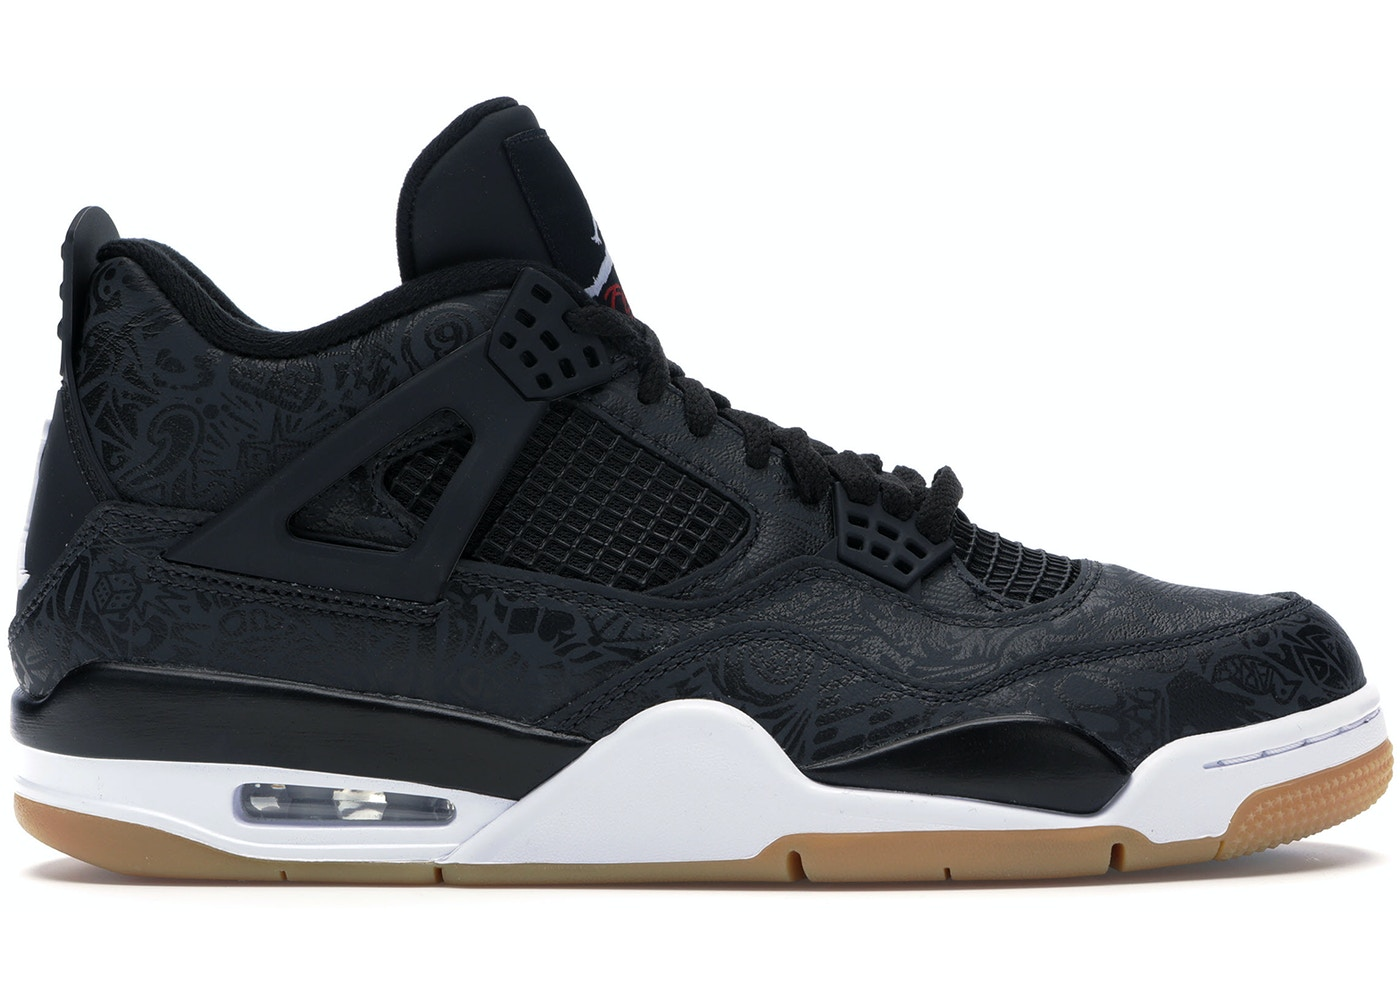 huge discount 23d10 69c44 Jordan 4 Retro Laser Black Gum - CI1184-001